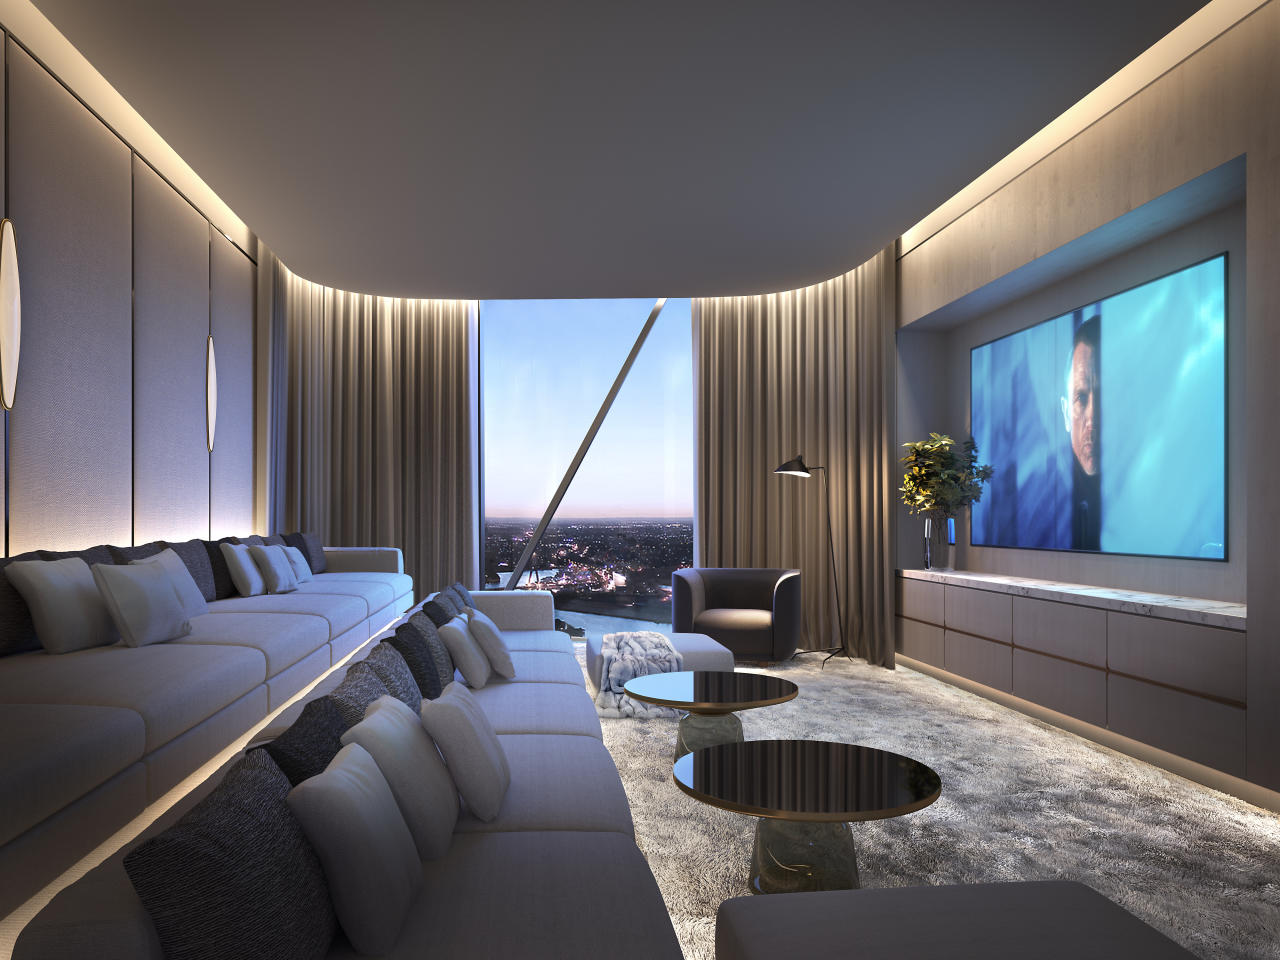 A look inside Australia's most EXPENSIVE apartment